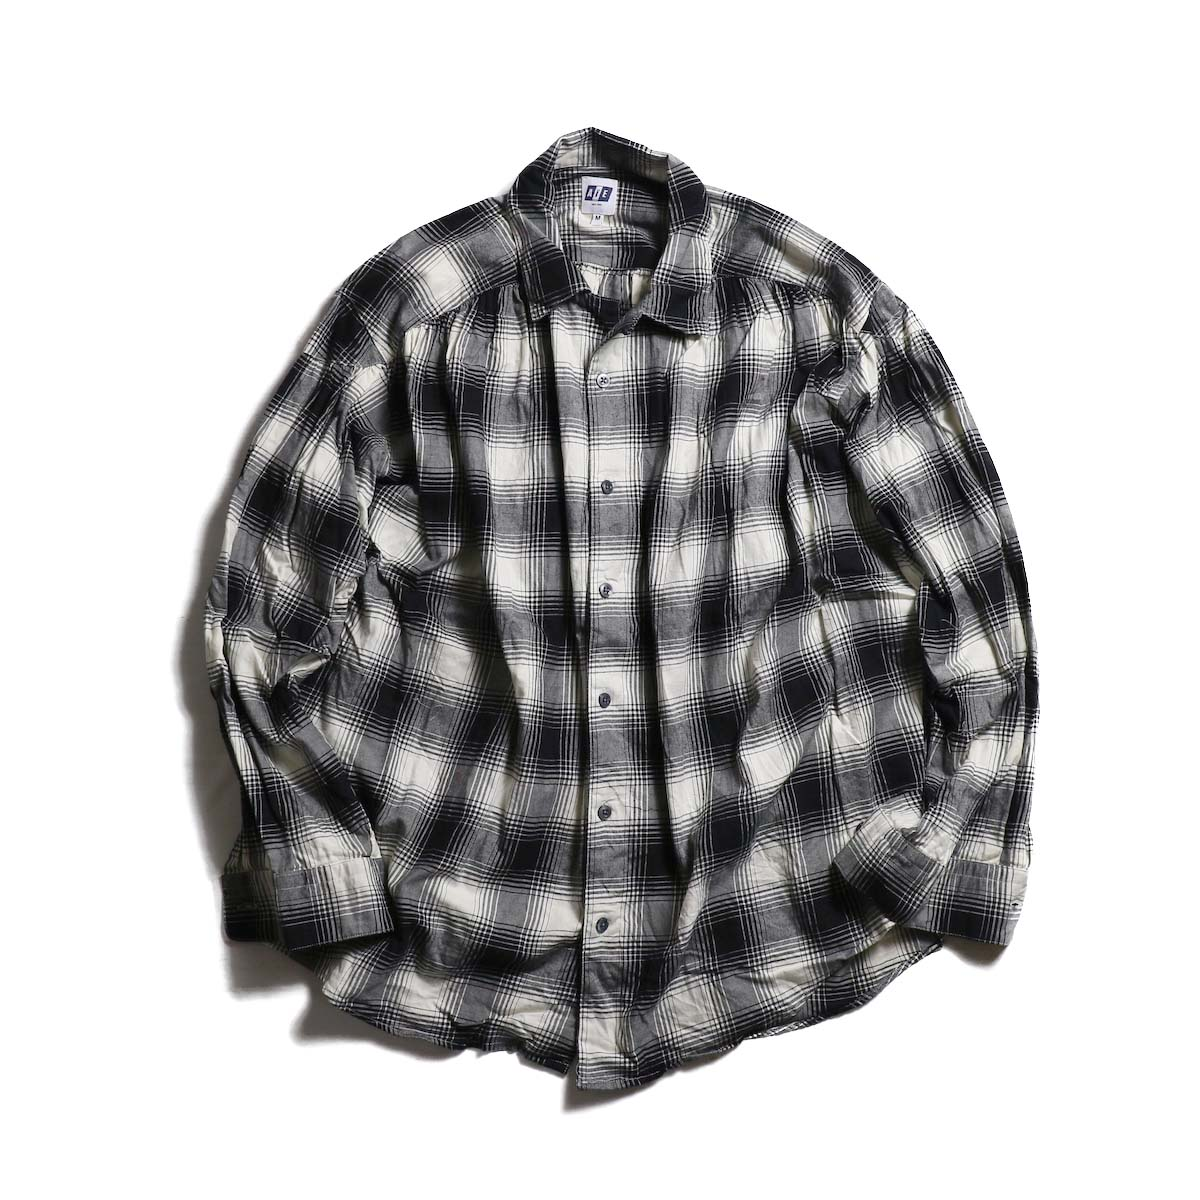 AiE / painter shirt - brushed twill plaid